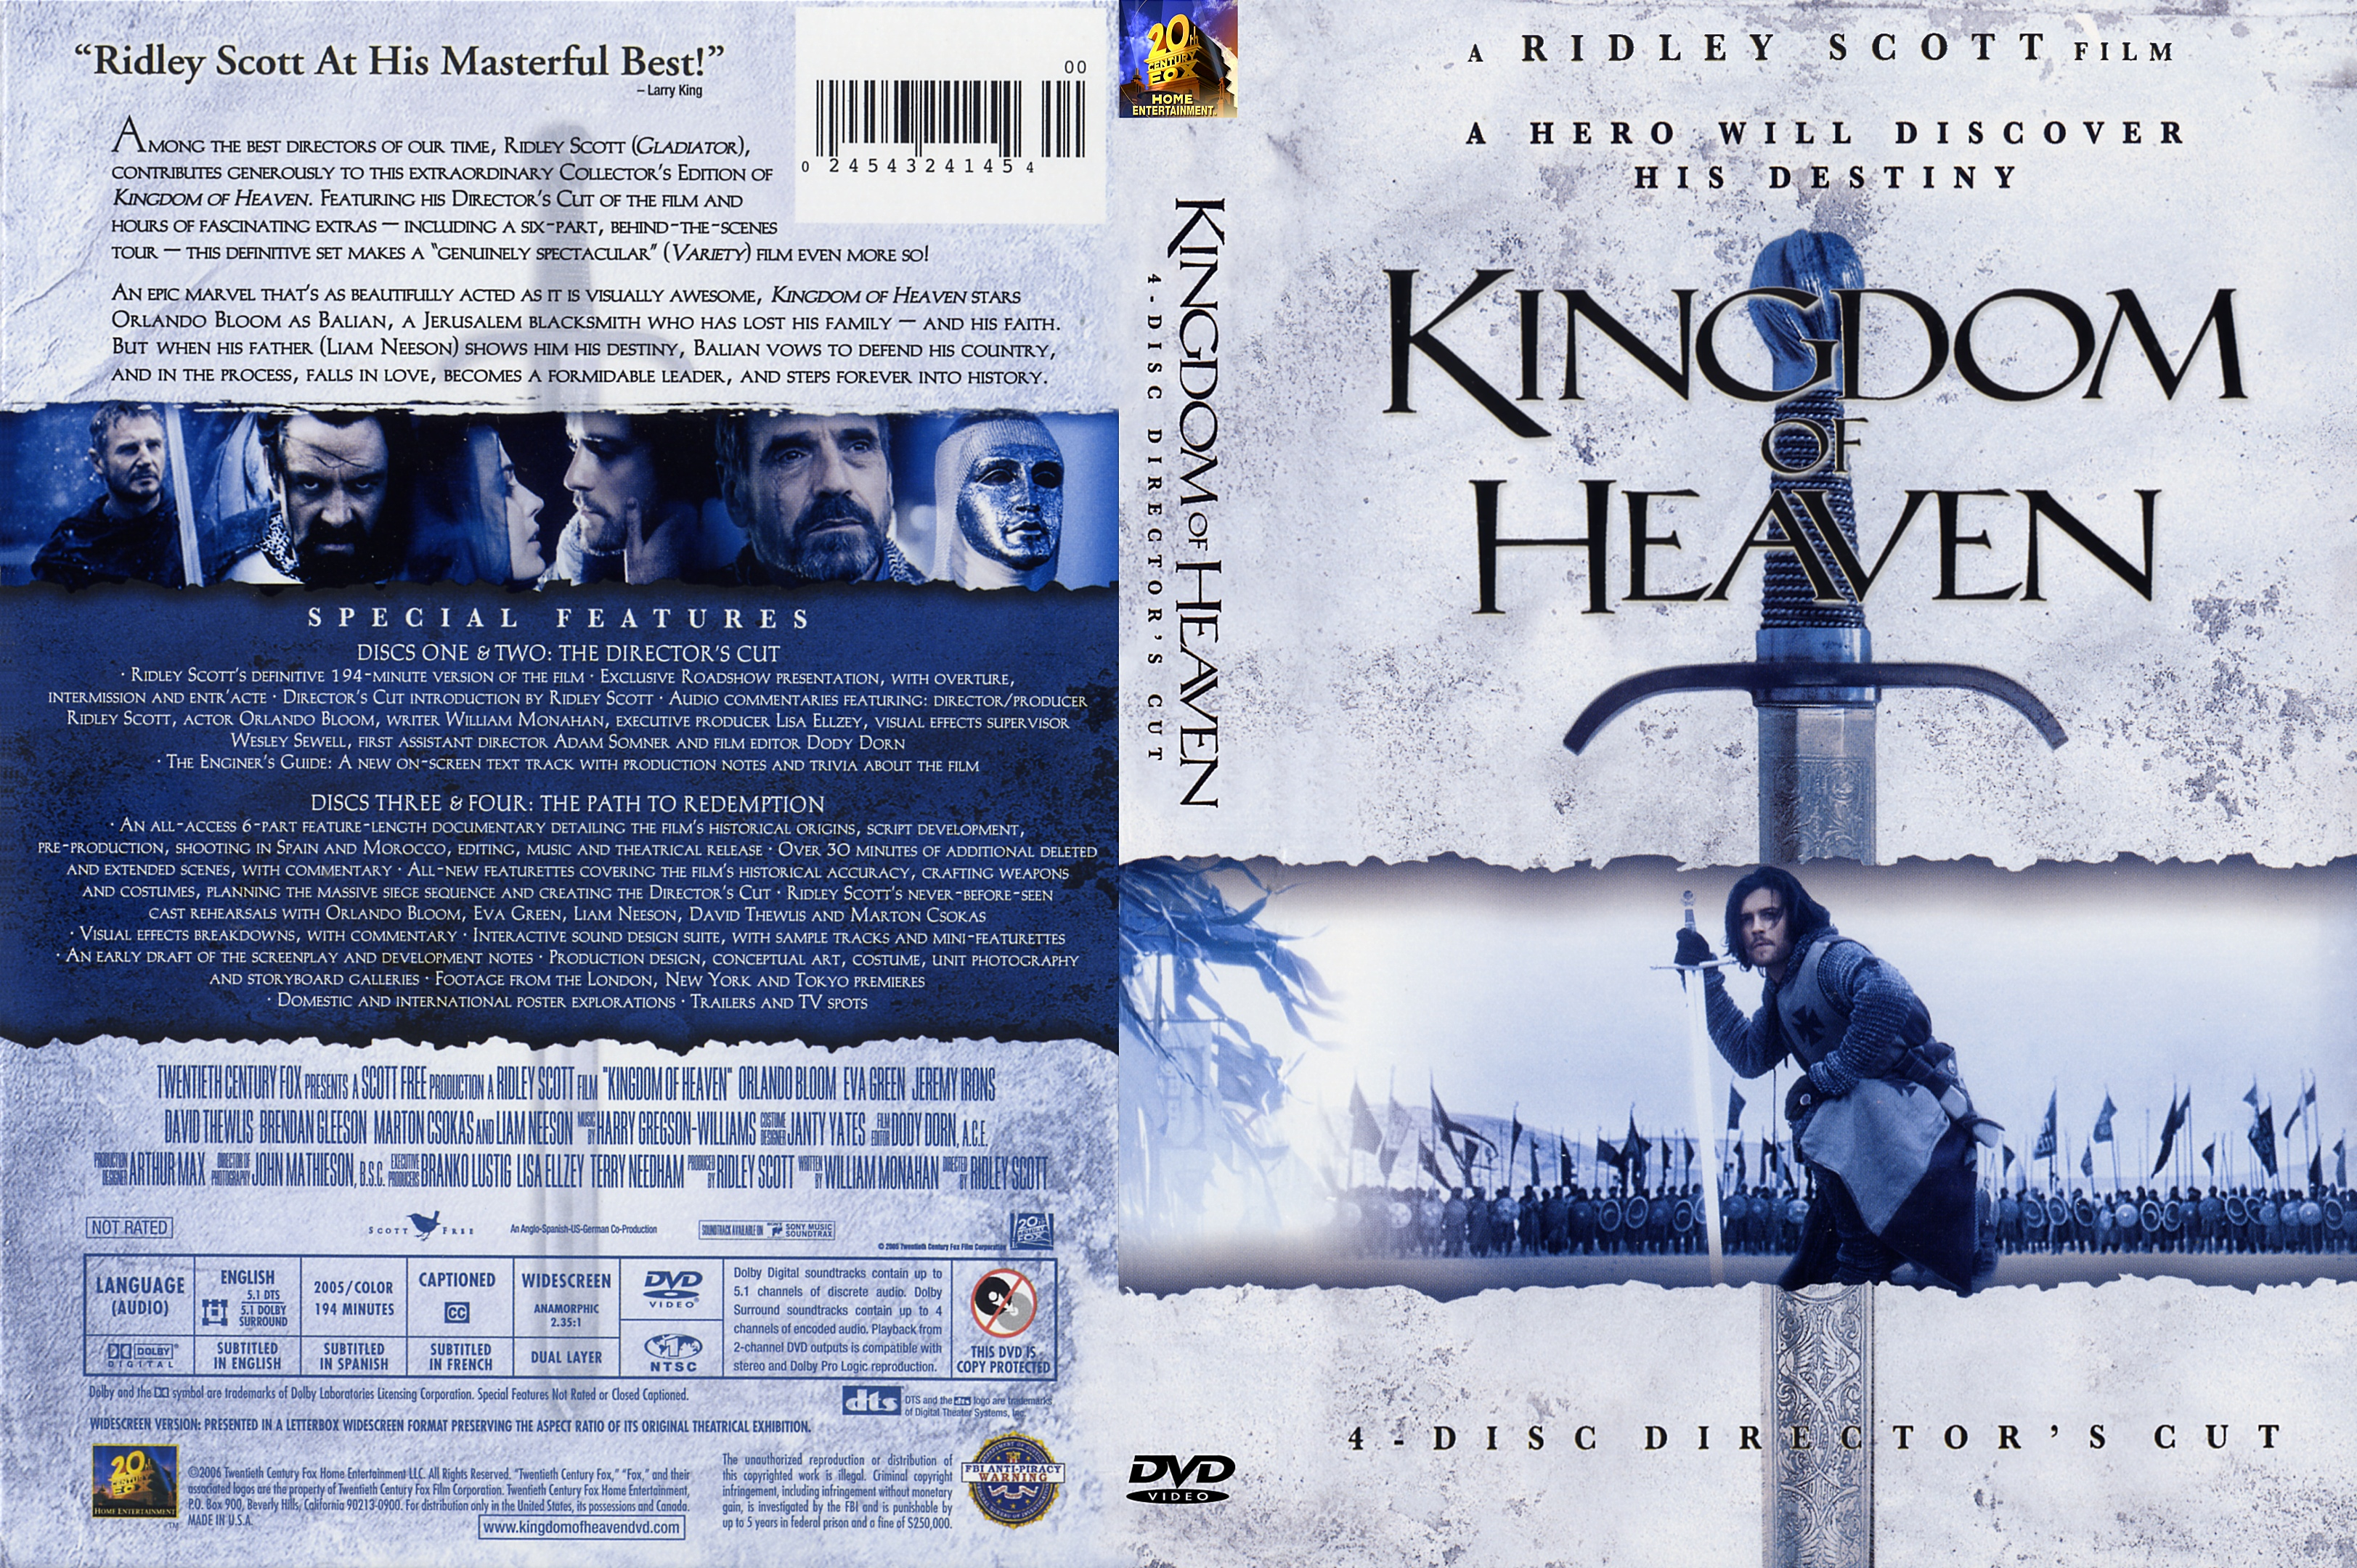 This is an image of Smart Kingdom of Heaven Dvd Label